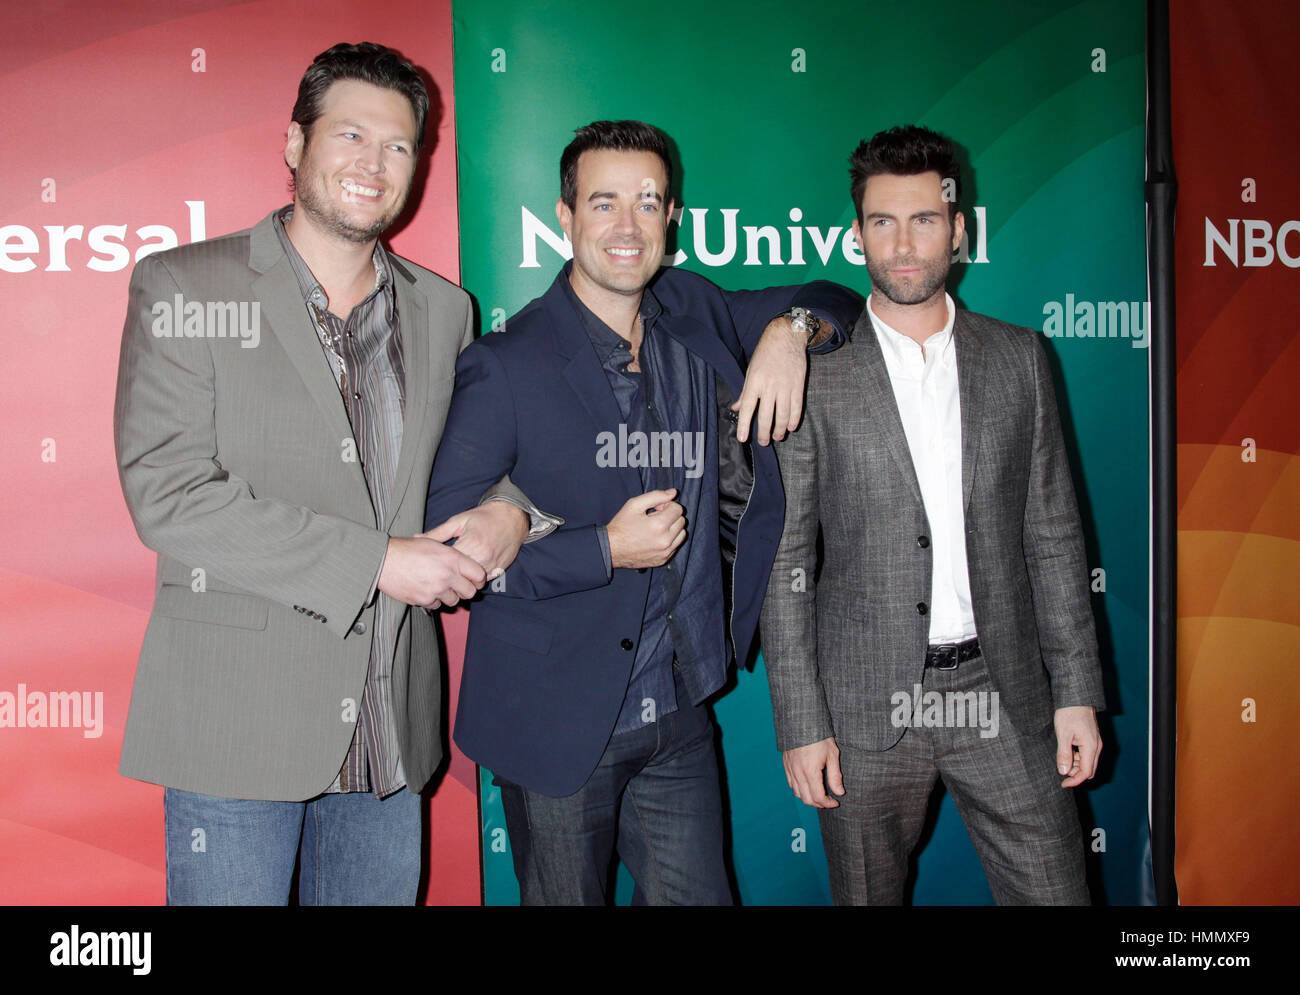 Carson Daly High Resolution Stock Photography And Images Alamy